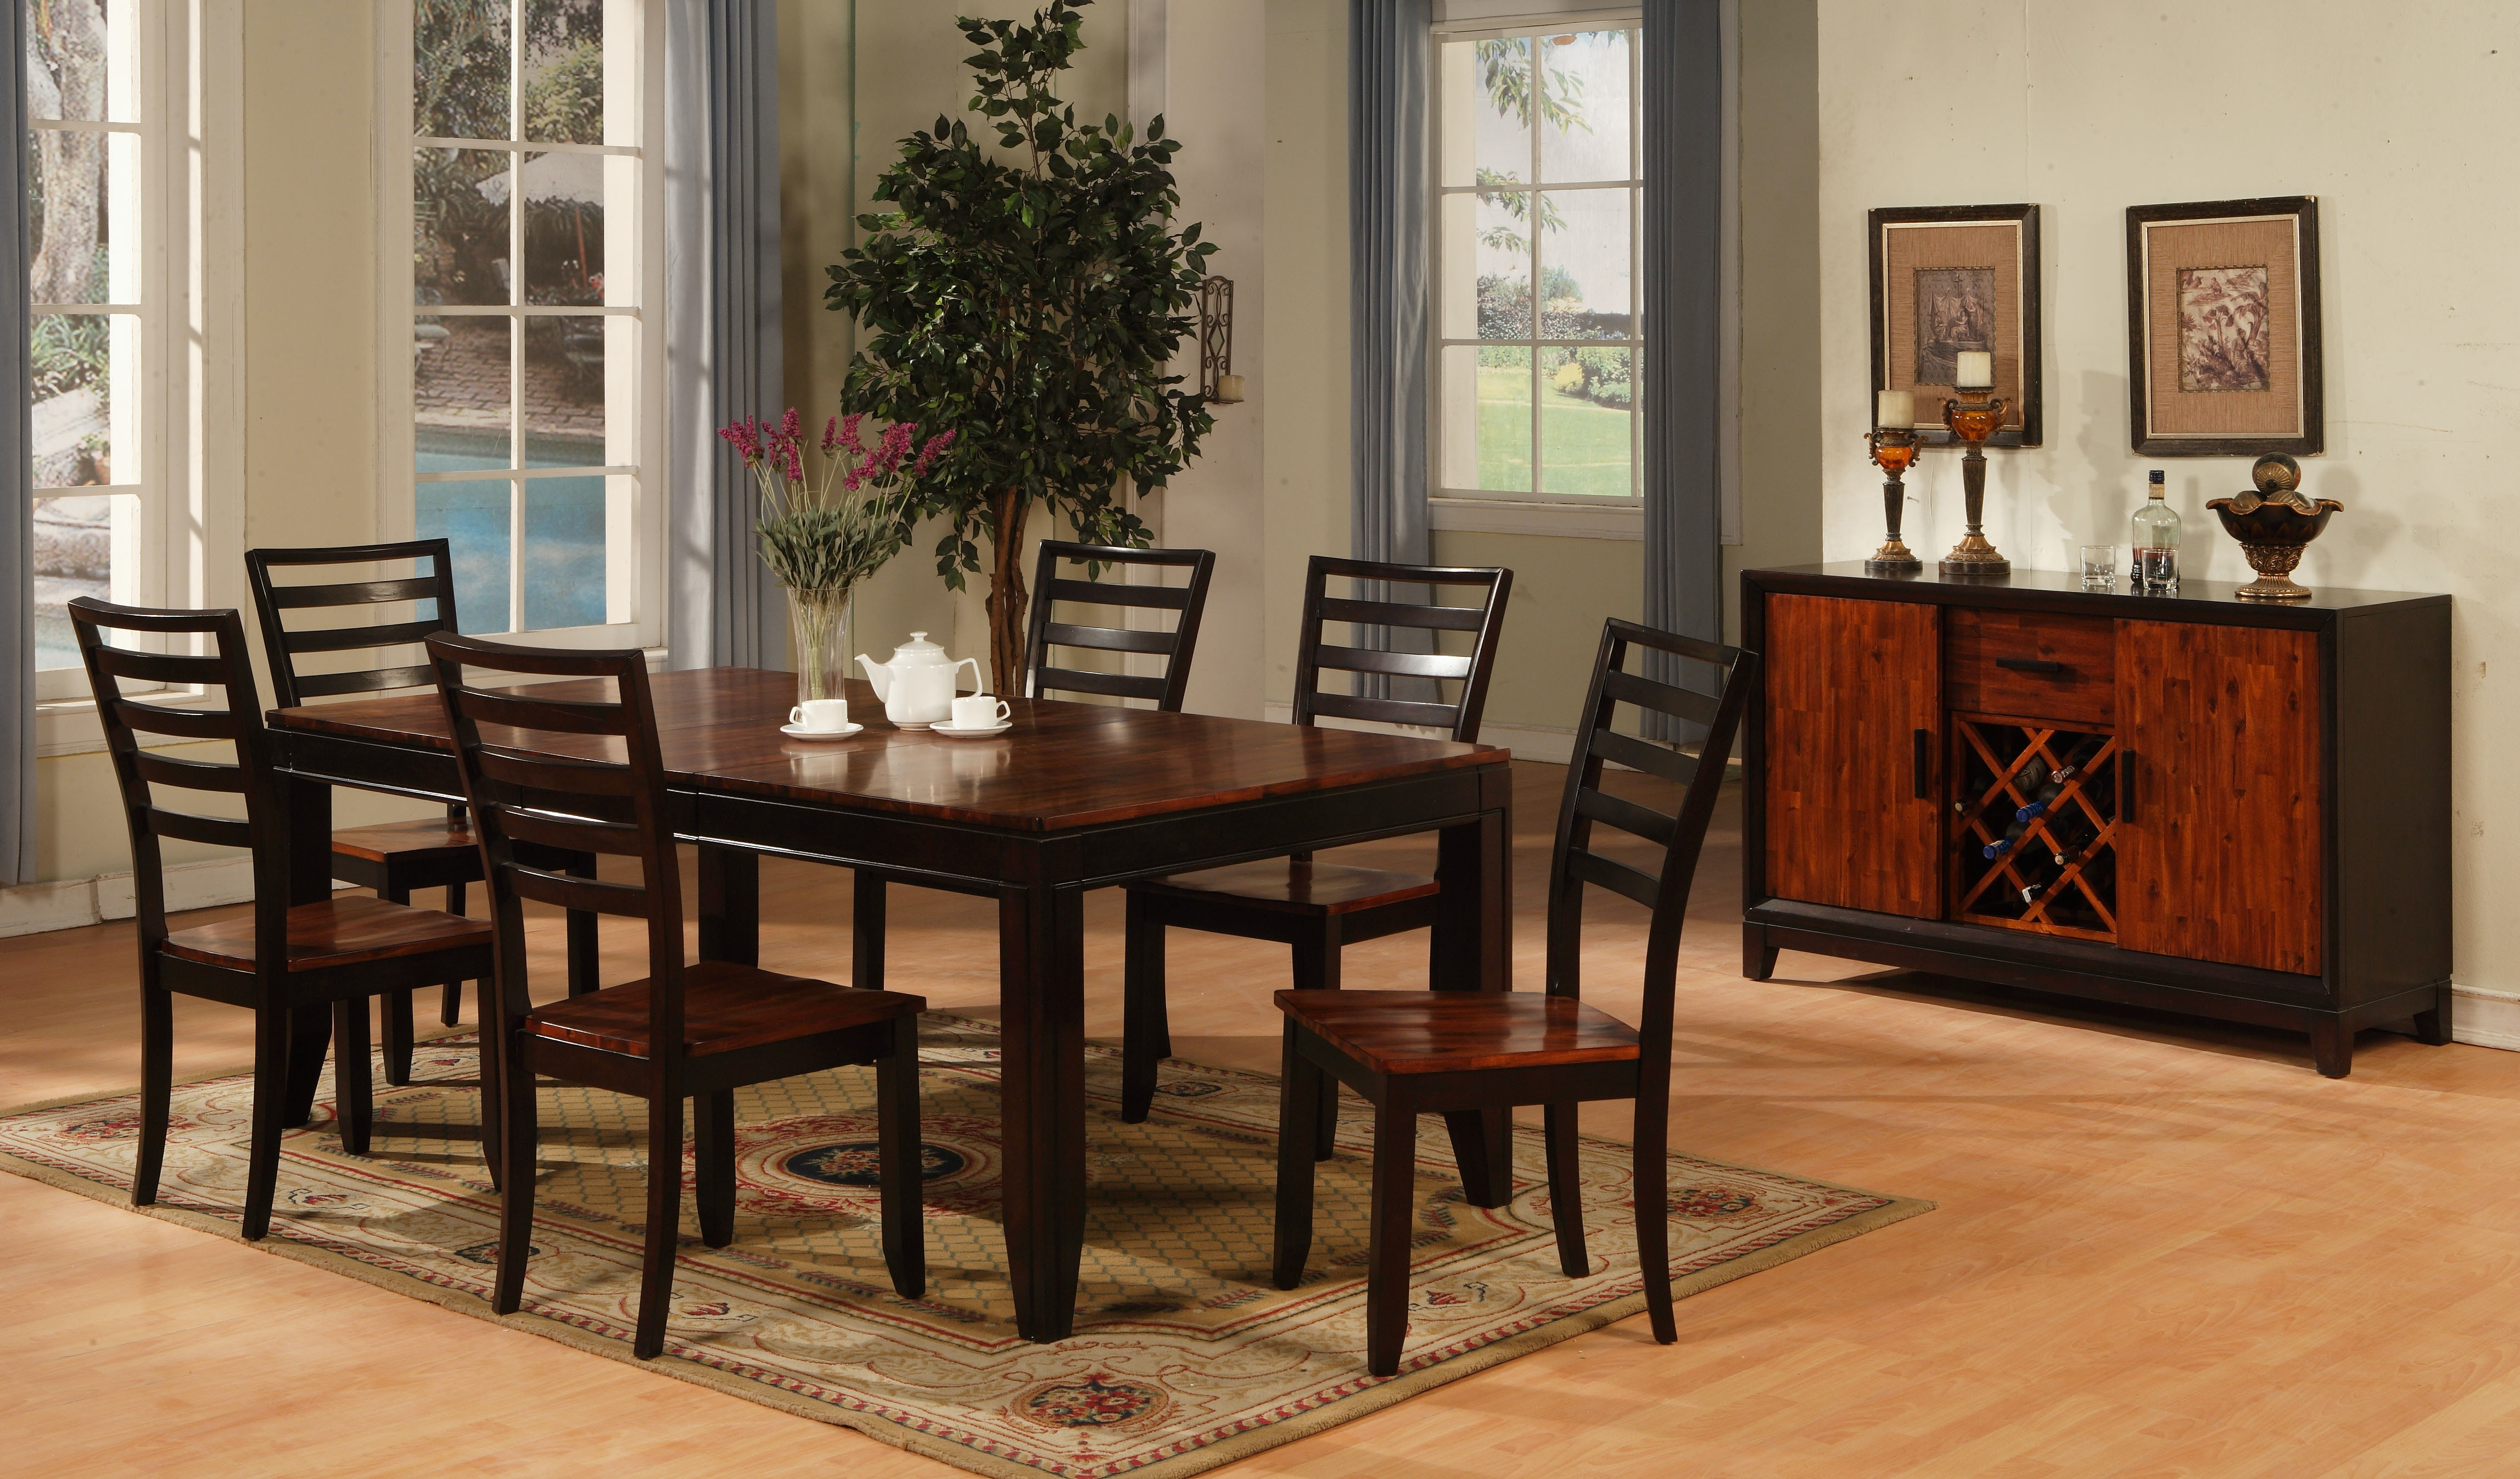 Holland House Dining Room RECTANGLE LEG TABLE 1267 4278L At American  Factory Direct